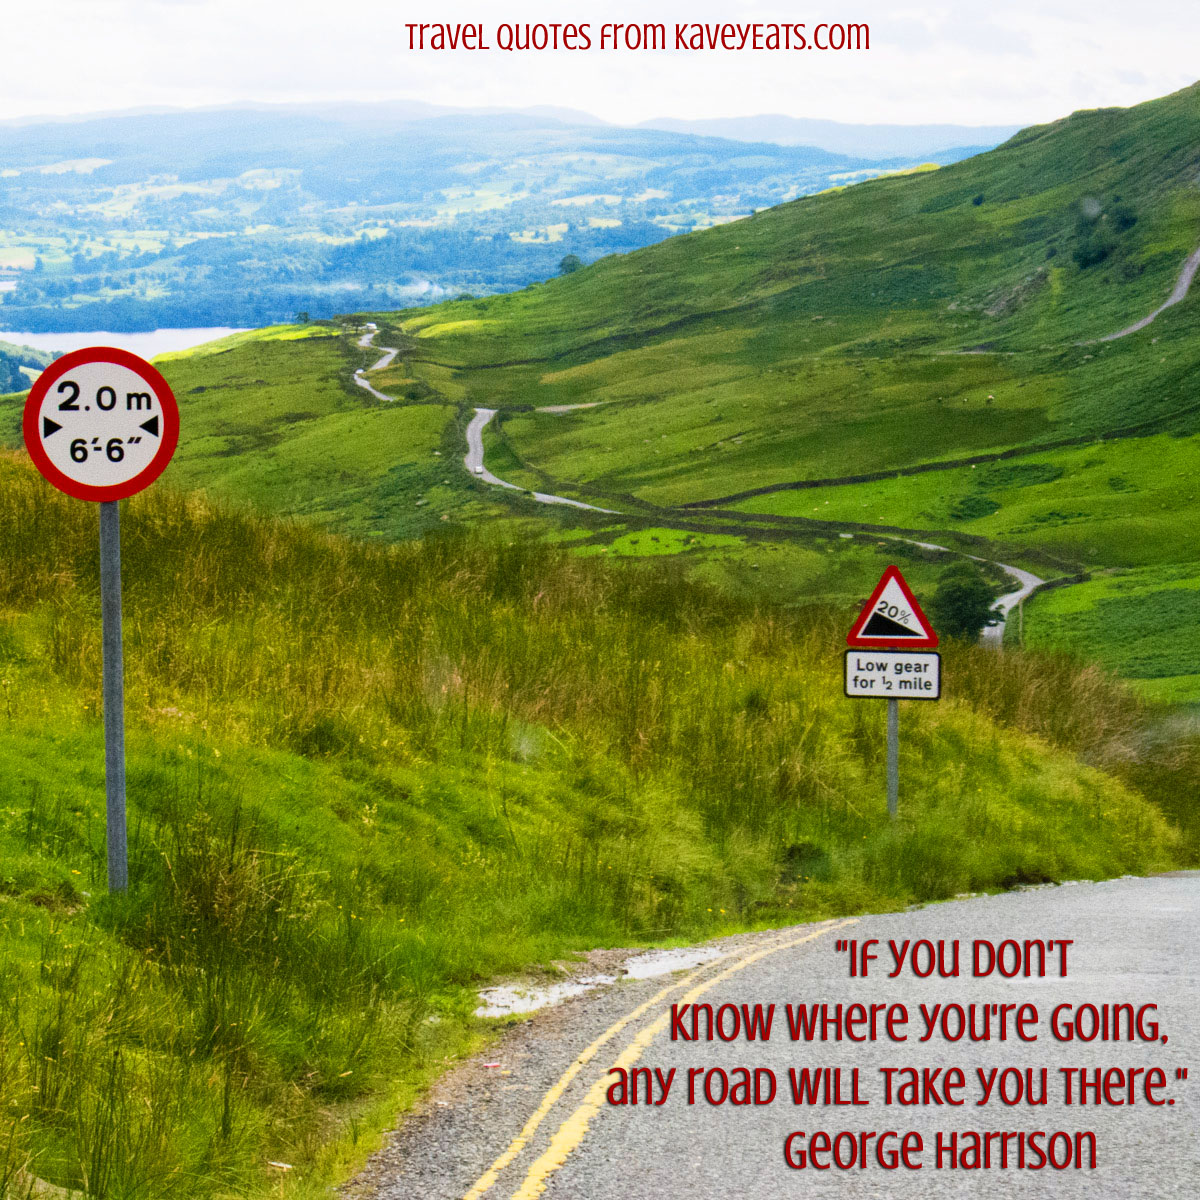 "Kirkstone Pass in Cumbria with quote ""If you don't know where you're going, any road will take you there."" George Harrison"